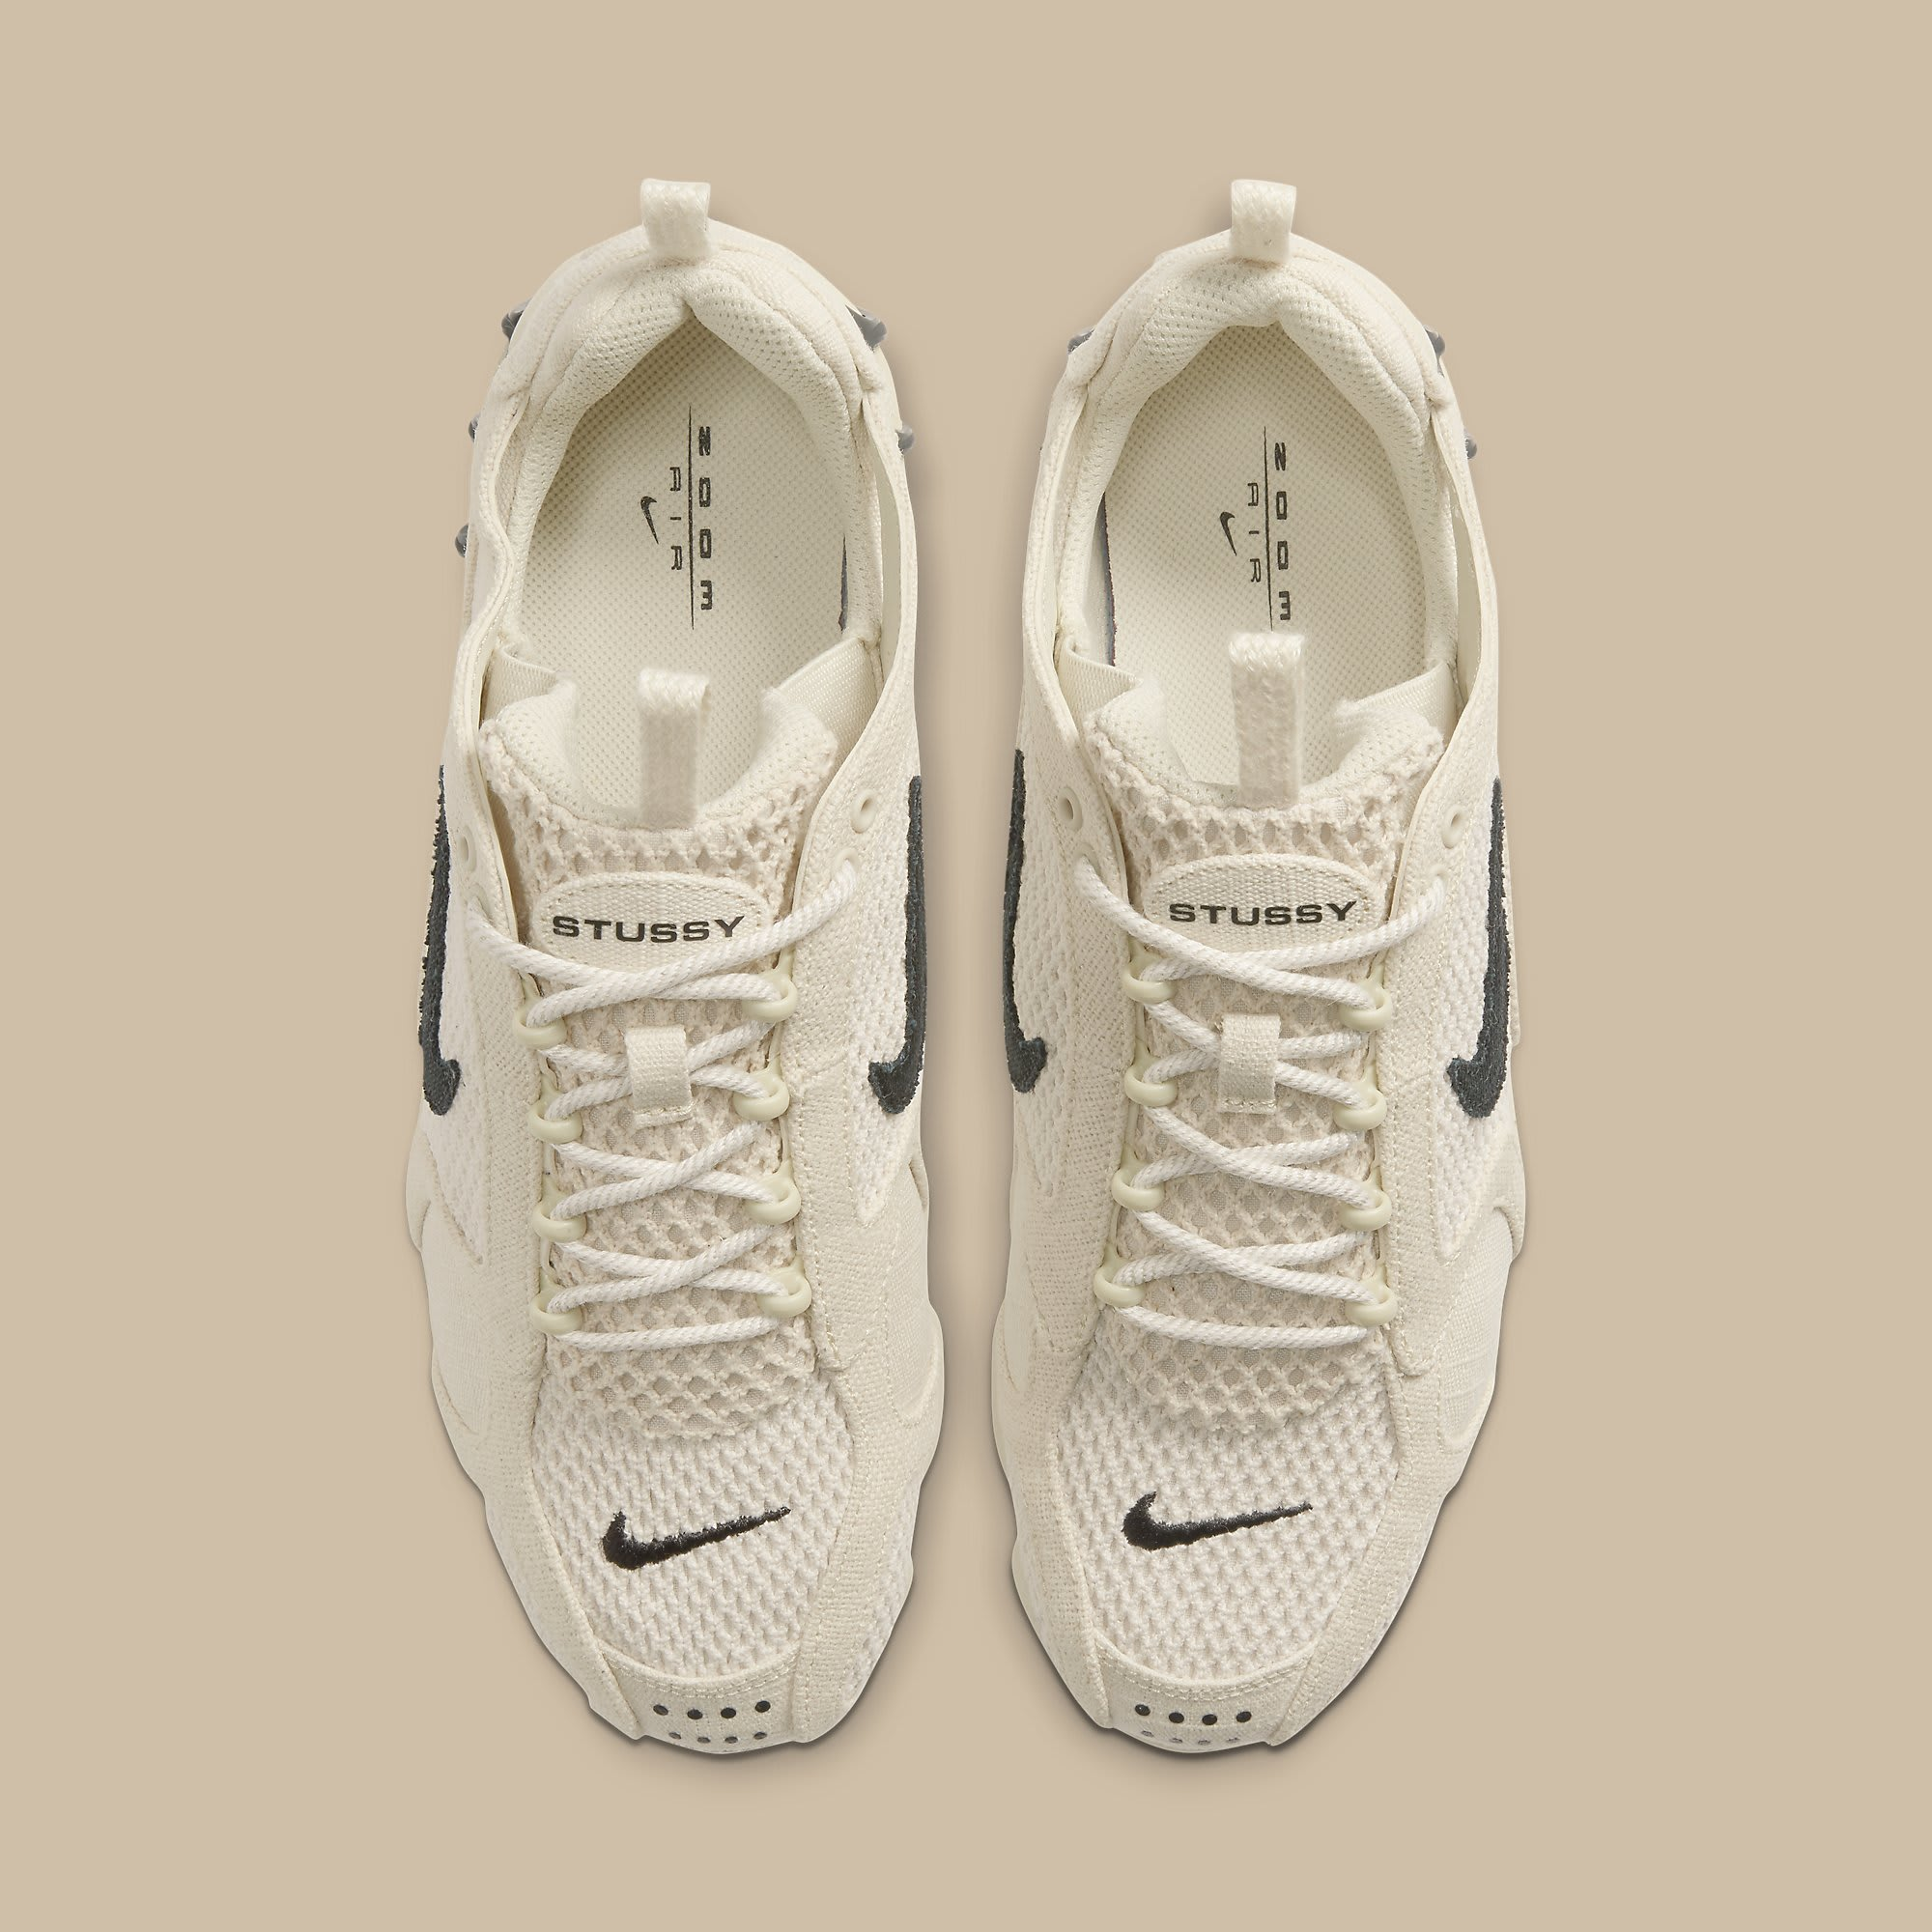 Stussy x Nike Air Zoom Spiridon 2 Caged Fossil Release Date CQ5486-200 Top